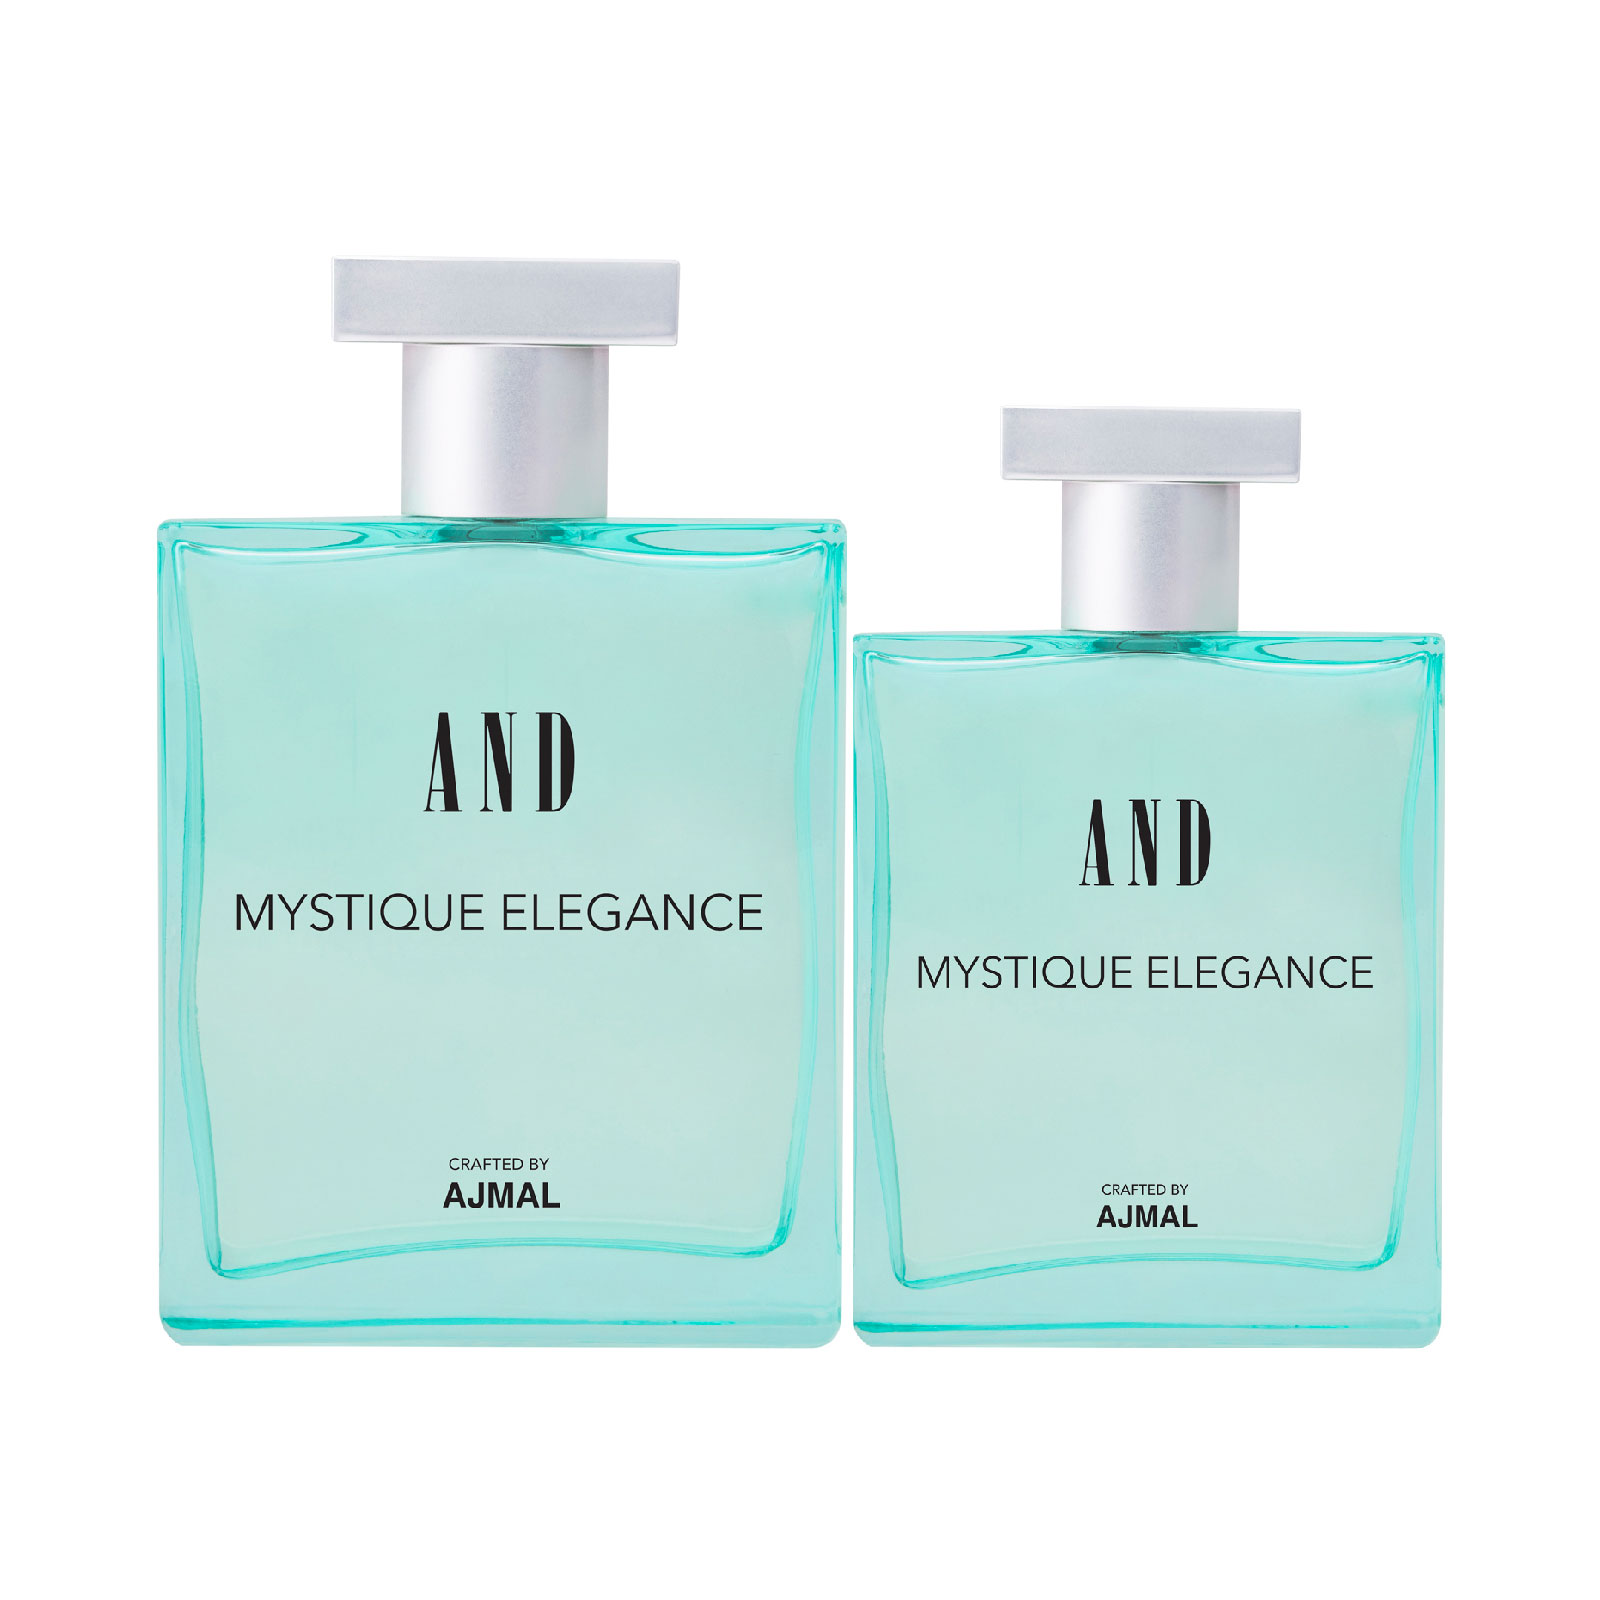 AND Crafted By Ajmal | AND Mystique Elegance 100ML & 50ML Pack of 2 Eau De Parfum for Women Crafted by Ajmal + 2 Parfum Testers